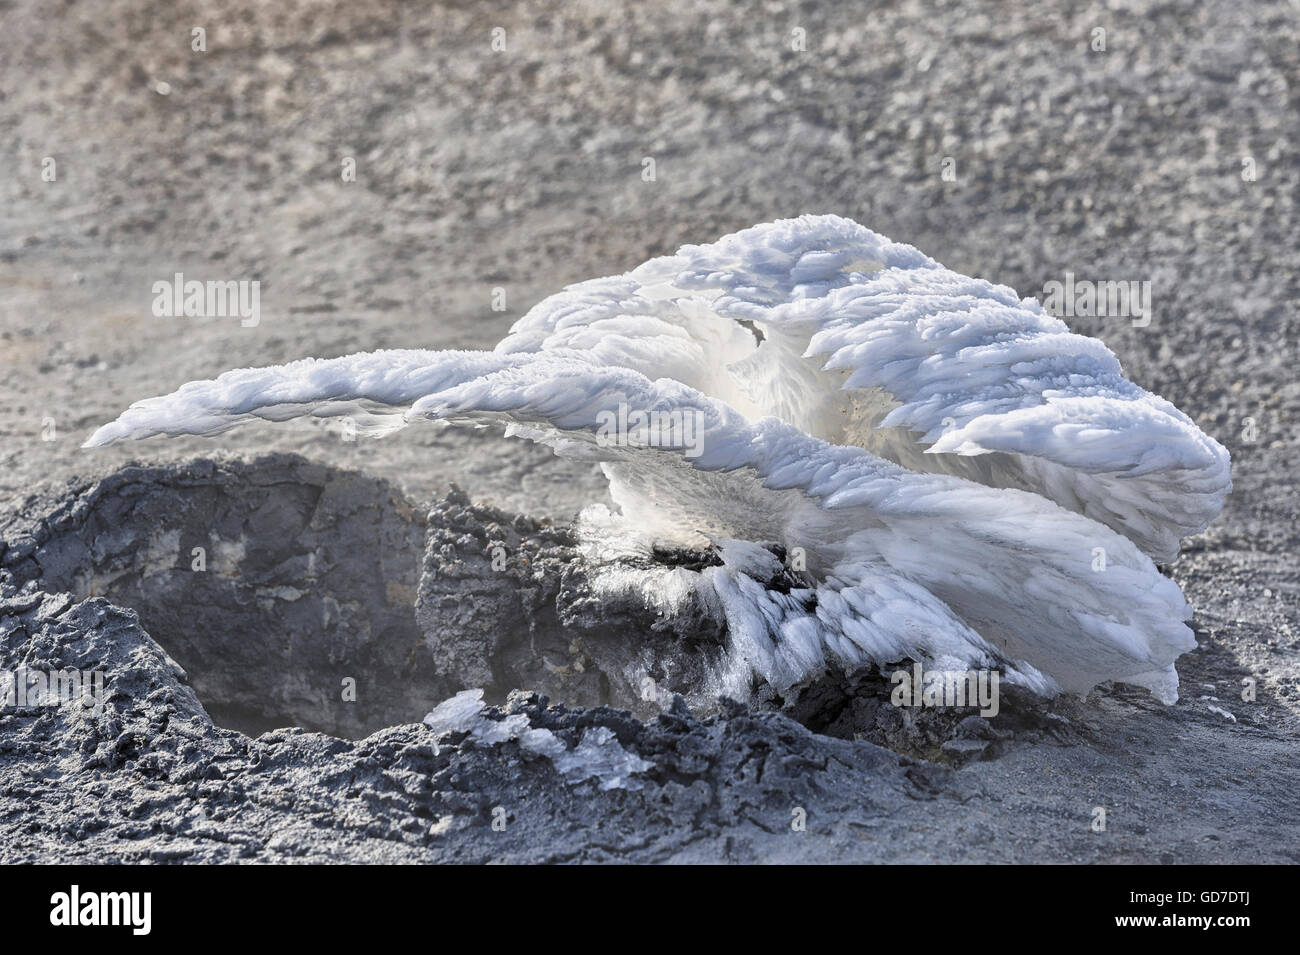 Ice feathers created by hot steam coming from a volcanic vent, Hverir, Iceland - Stock Image